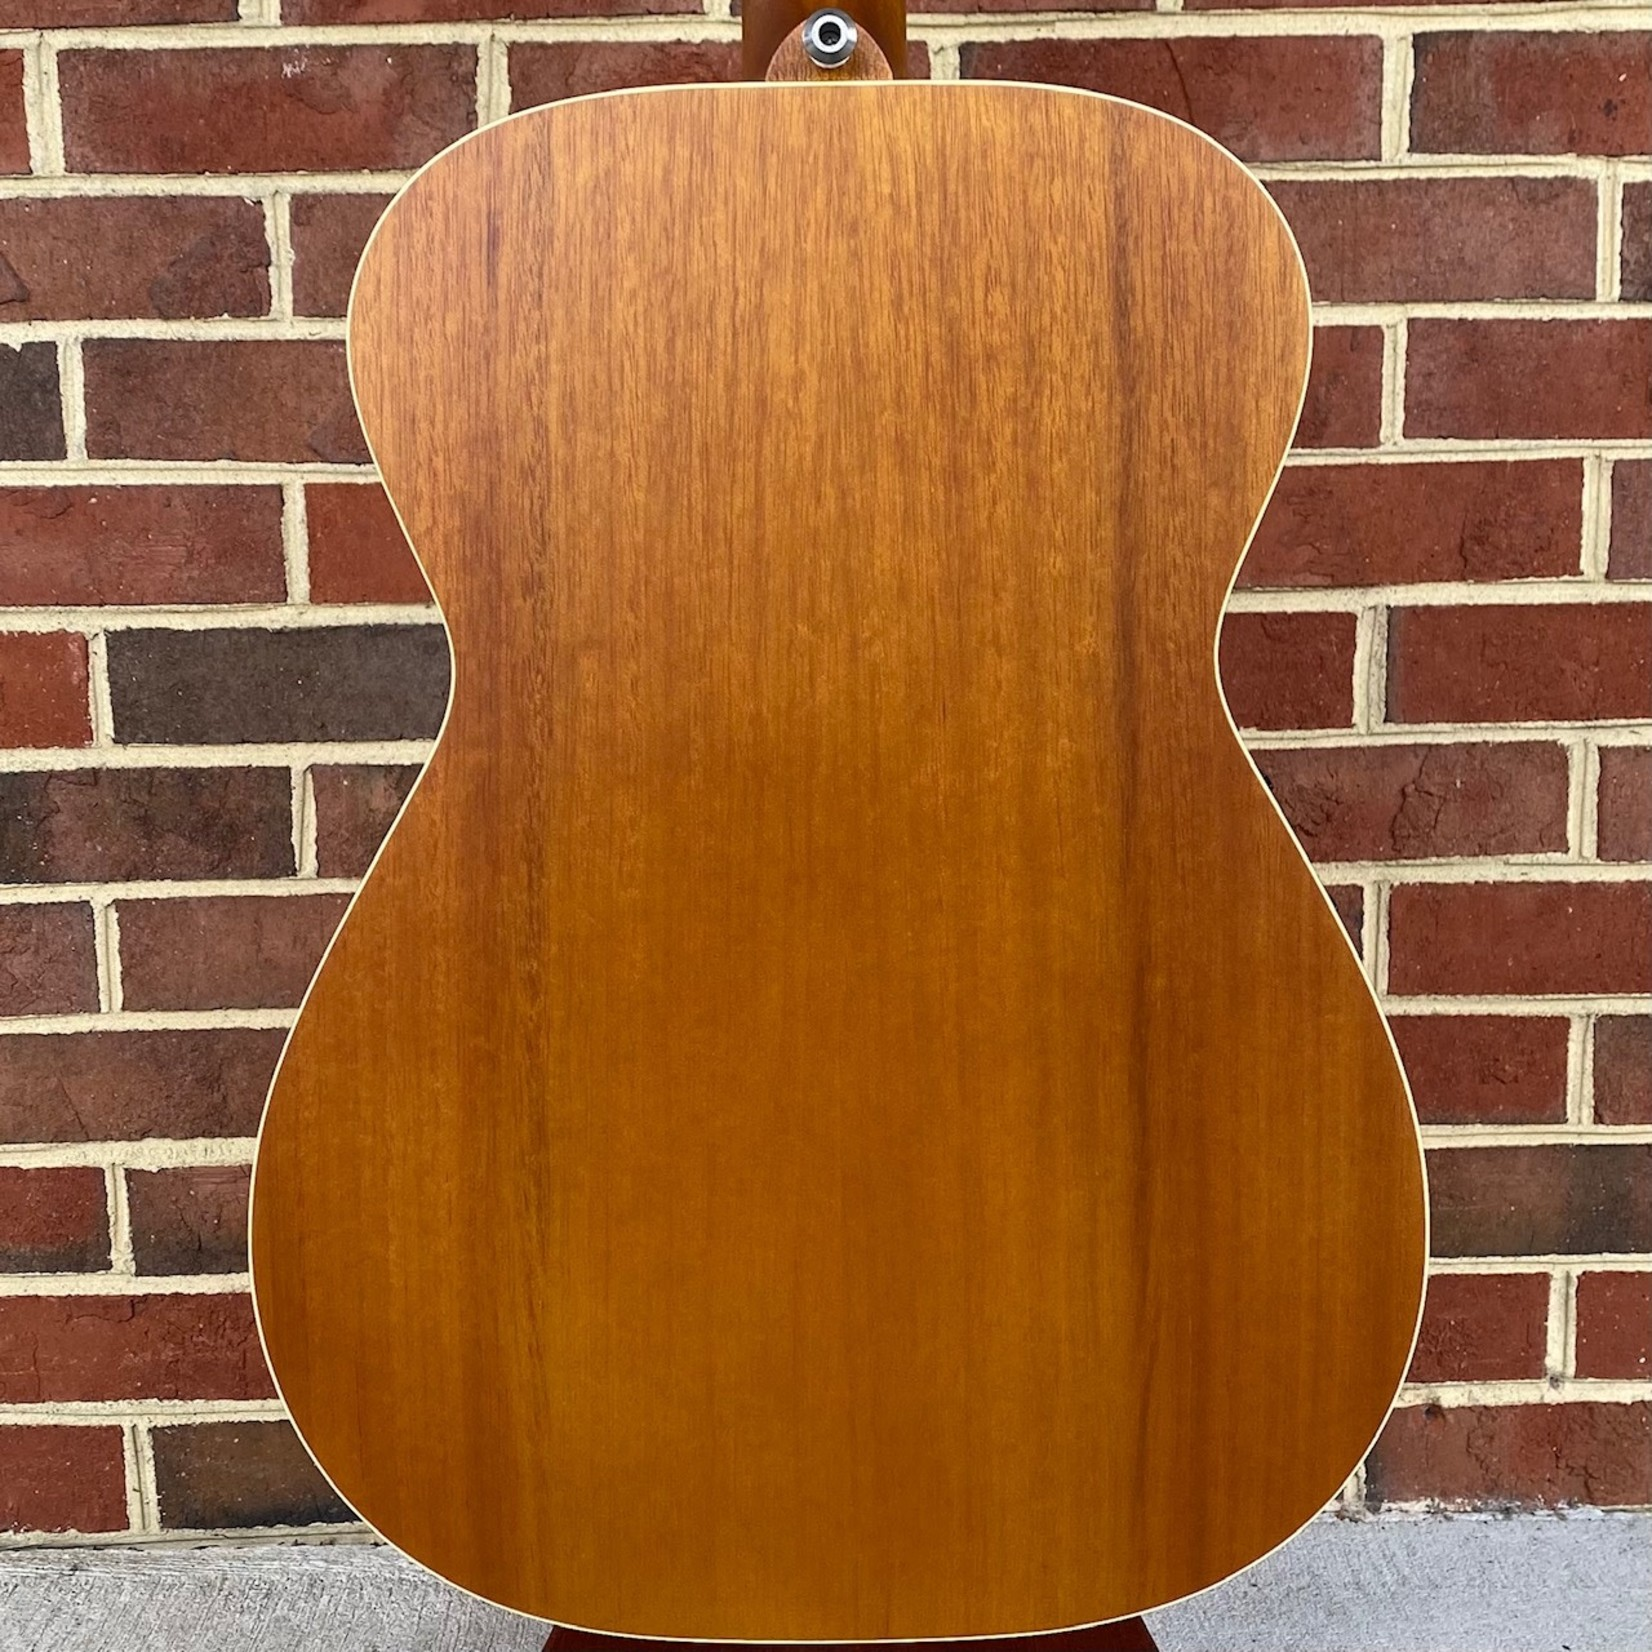 Maton Maton EBG808TE, Solid AAA Spruce Top, Solid Queensland Maple Back and Sides, AP5 PRO Pickup, Hardcase Included